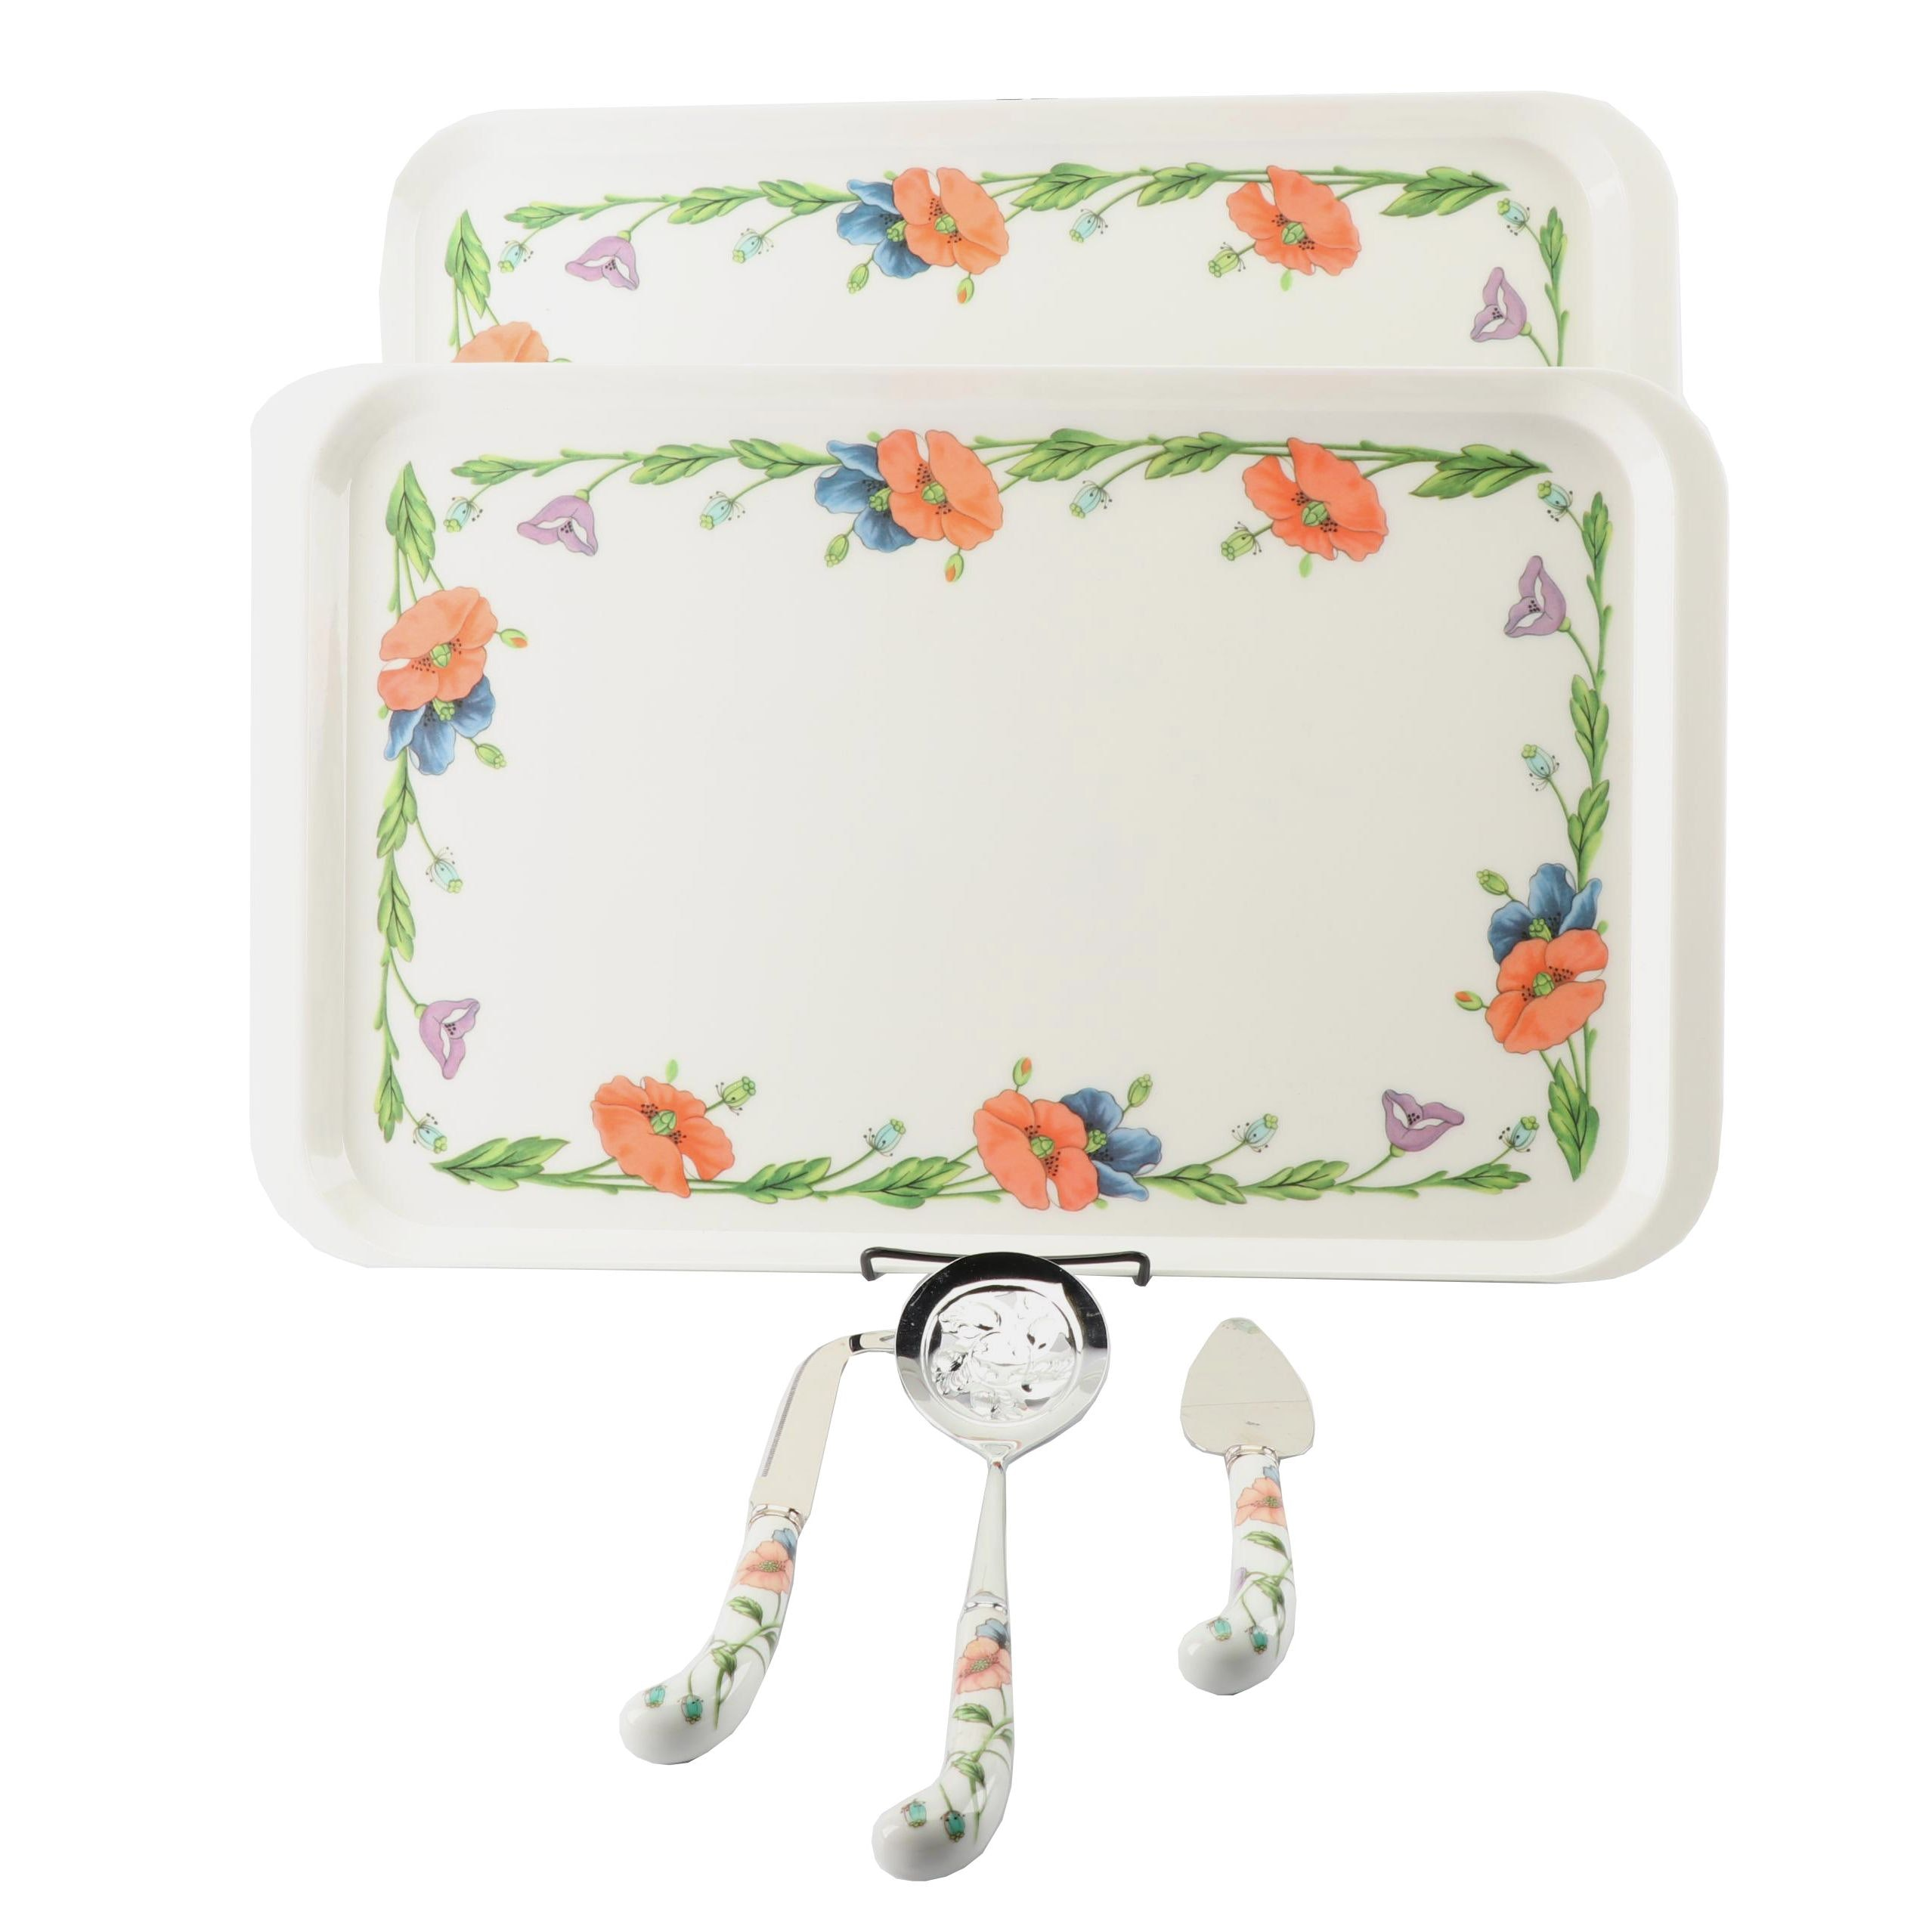 """Villeroy & Boch """"Amapola"""" Serving Trays with Prill Serving Utensils"""